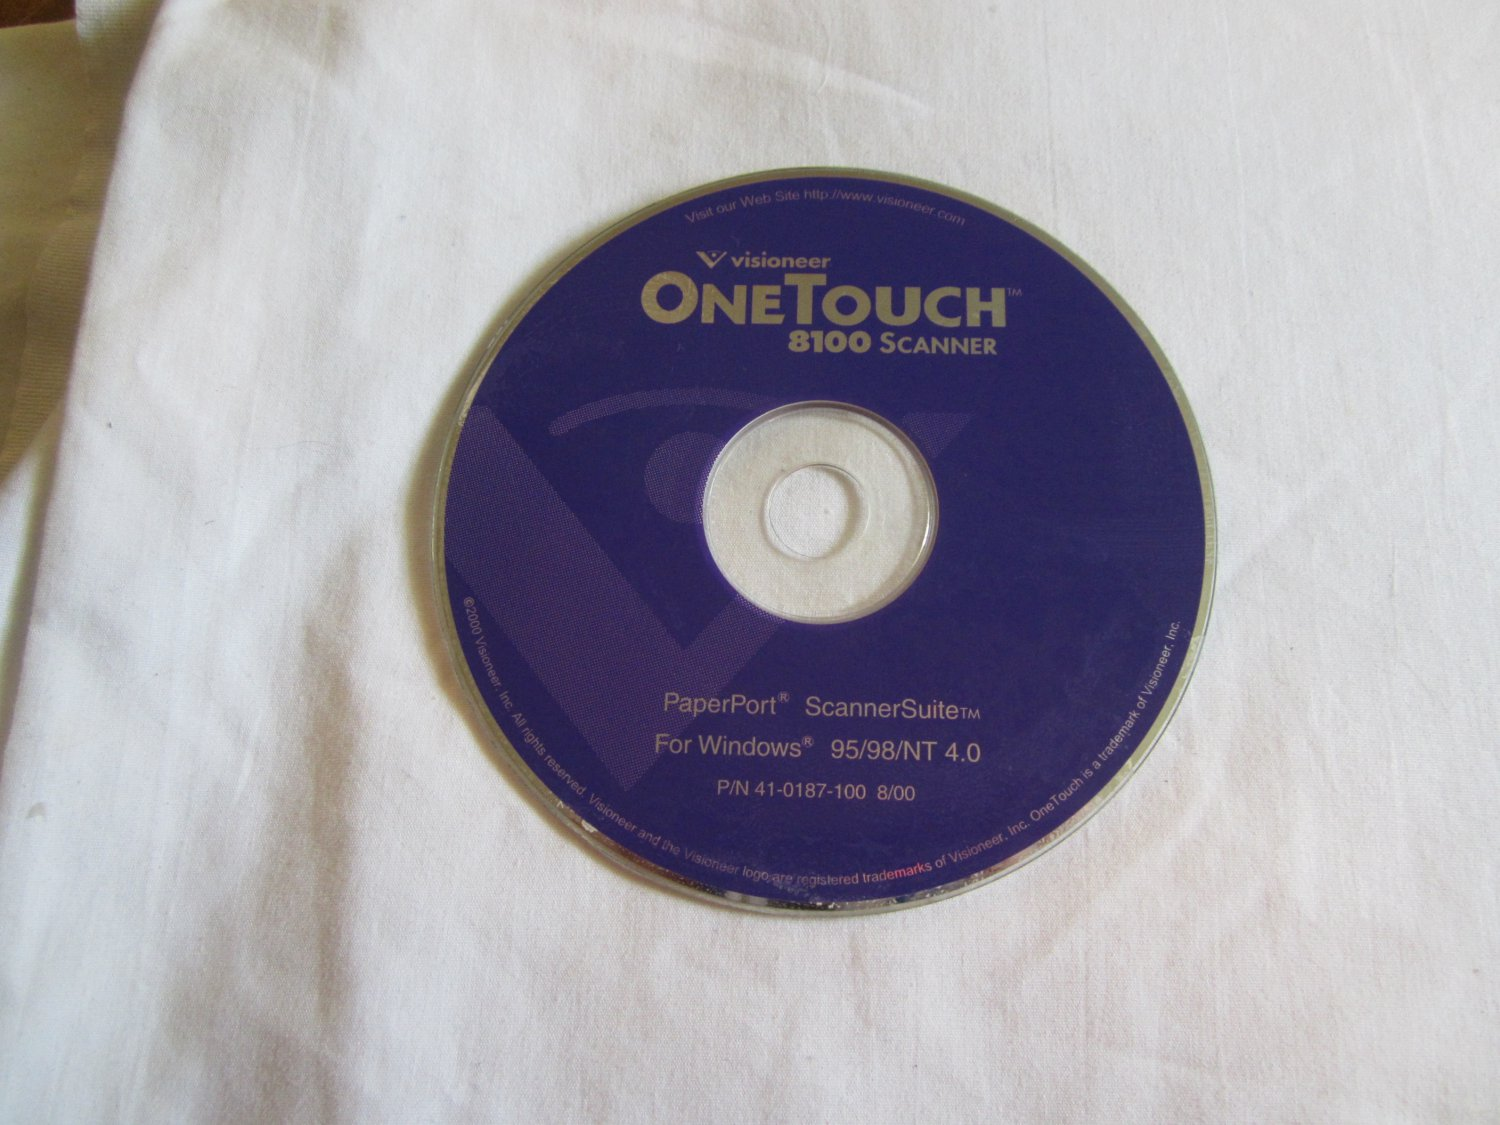 Visioneer One Touch 8100 Scanner CD ROM PaperPort Scanner Suite